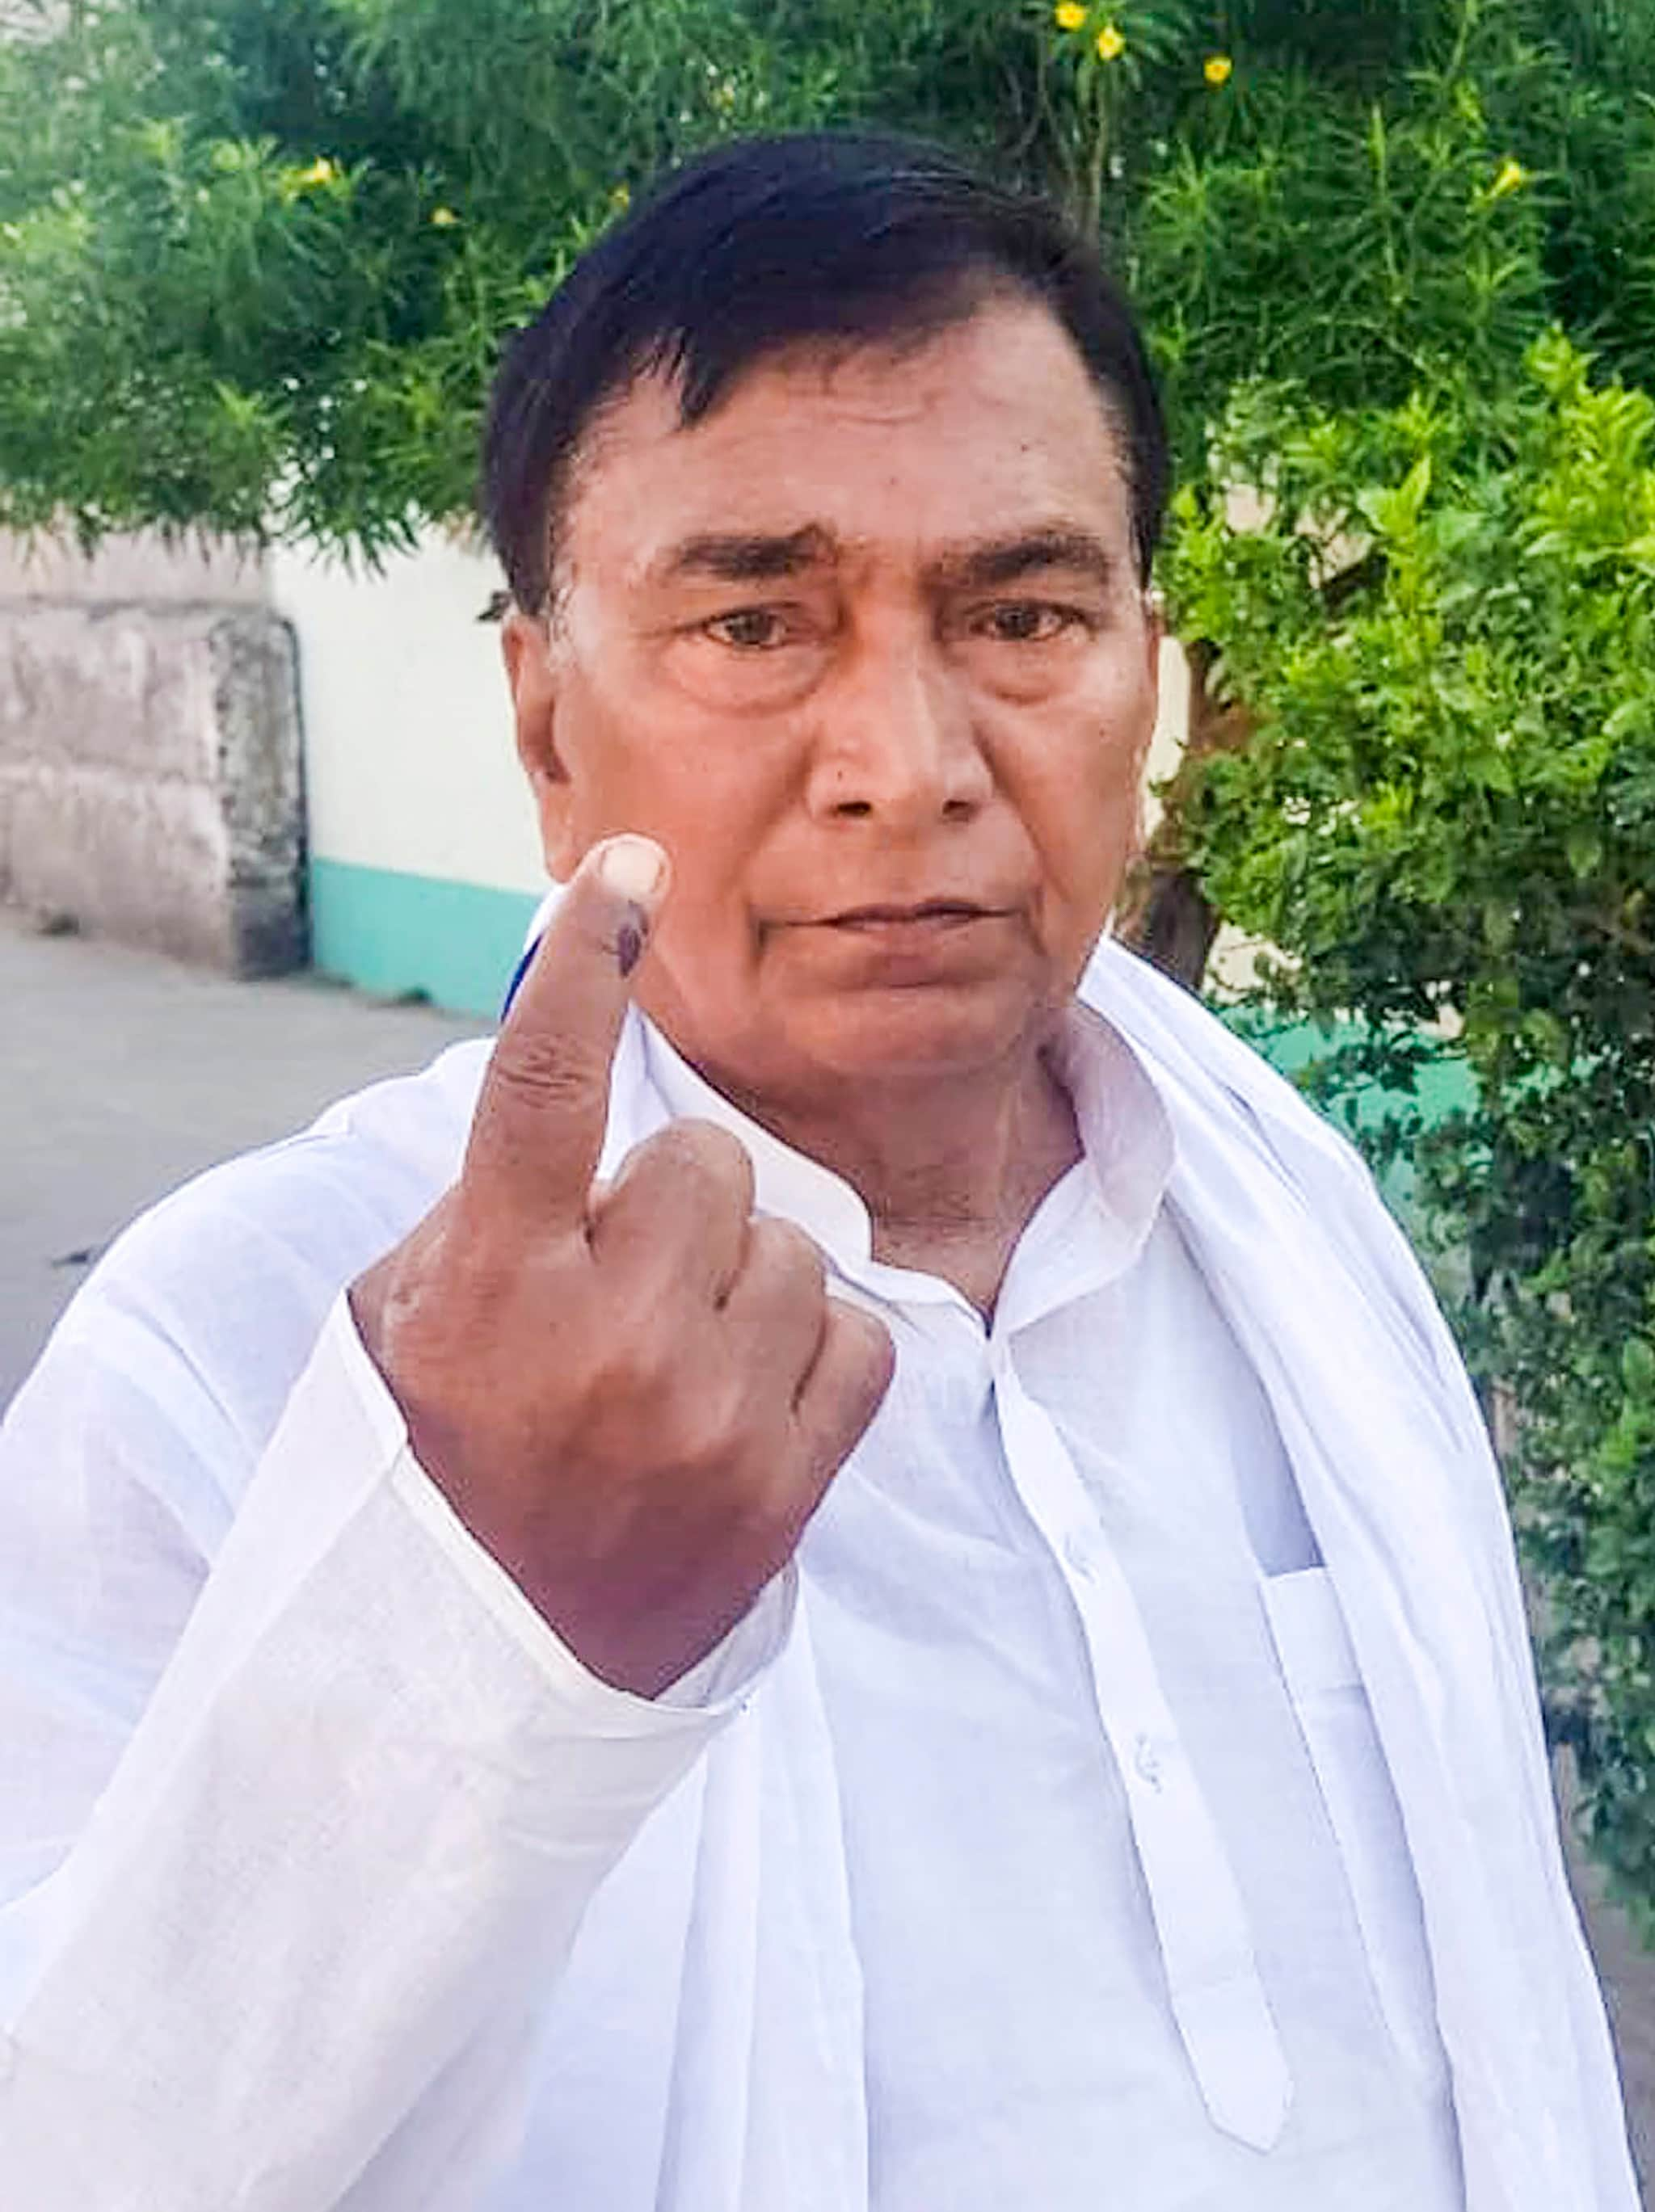 Bihar's Education Minister, Krishnanand Verma, shows his finger marked with indelible ink after casting vote at a polling station during the seventh phase of Lok Sabha elections, in Jahanabad district, Sunday, May 19, 2019. (PTI Photo)